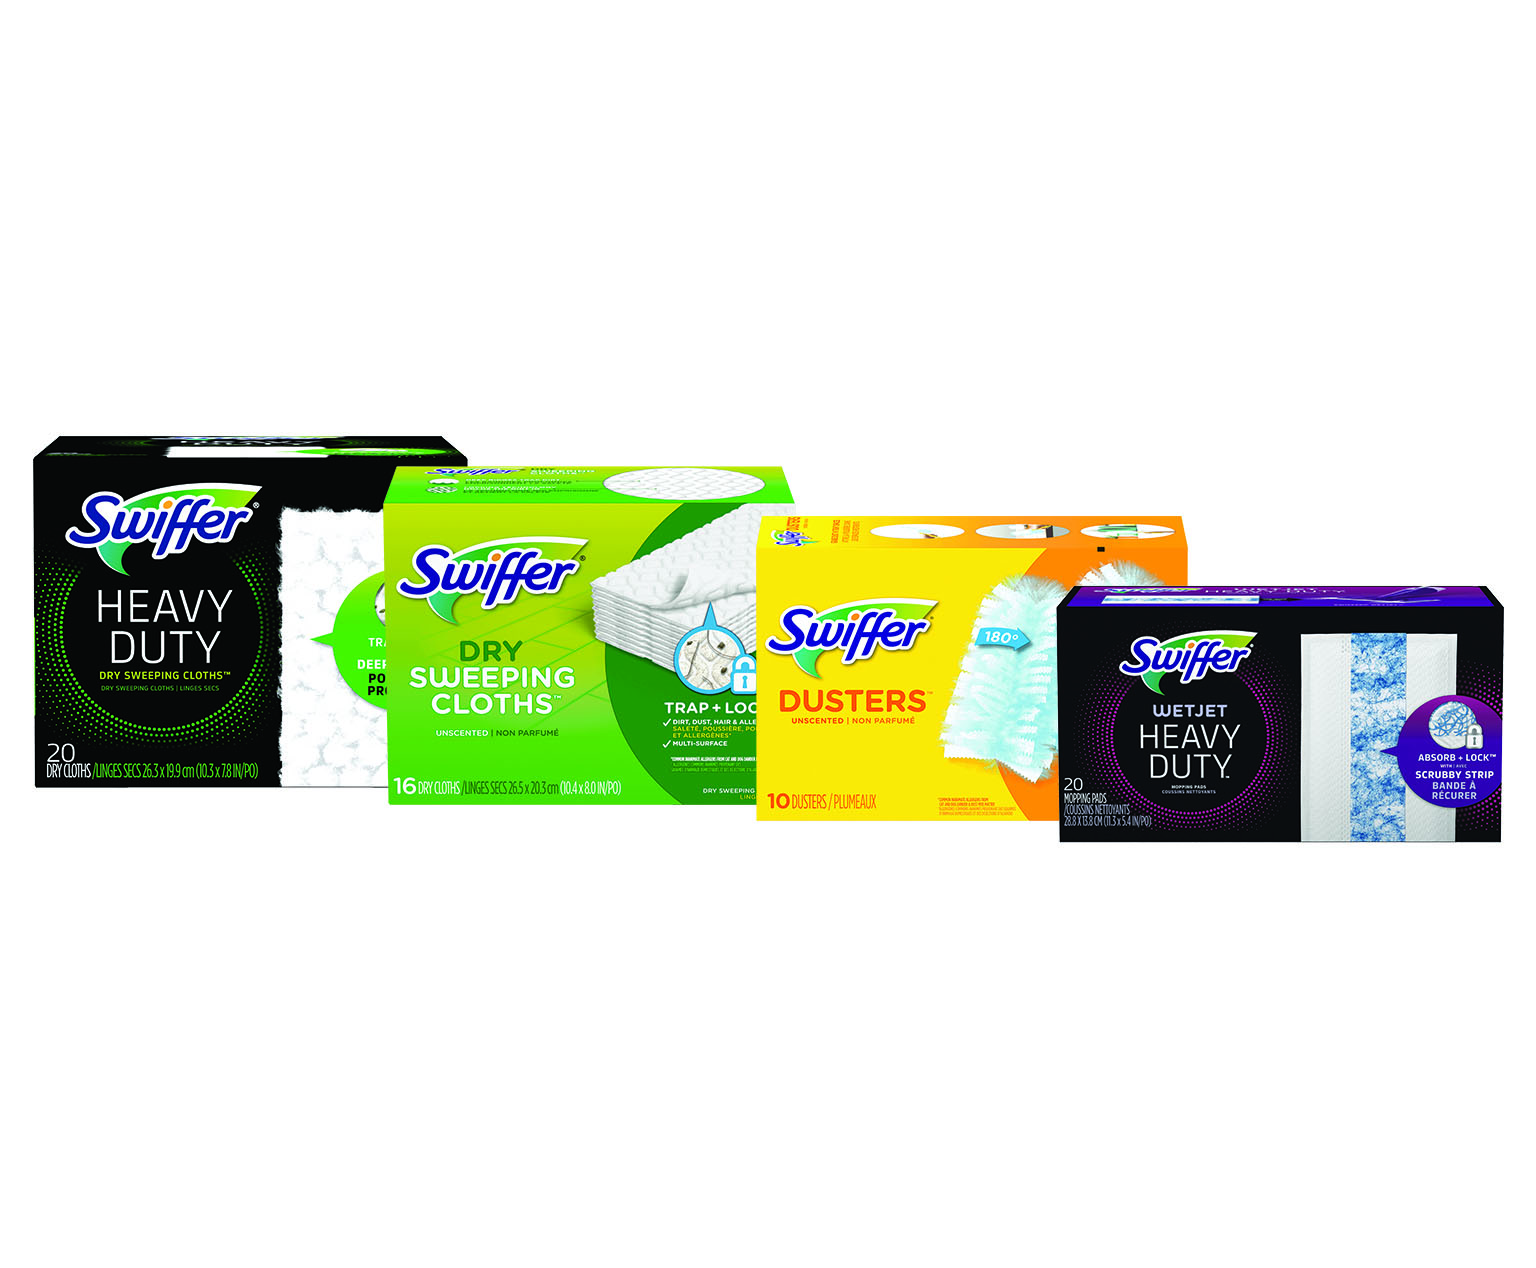 Thumbnail for Swiffer® Recycling Program